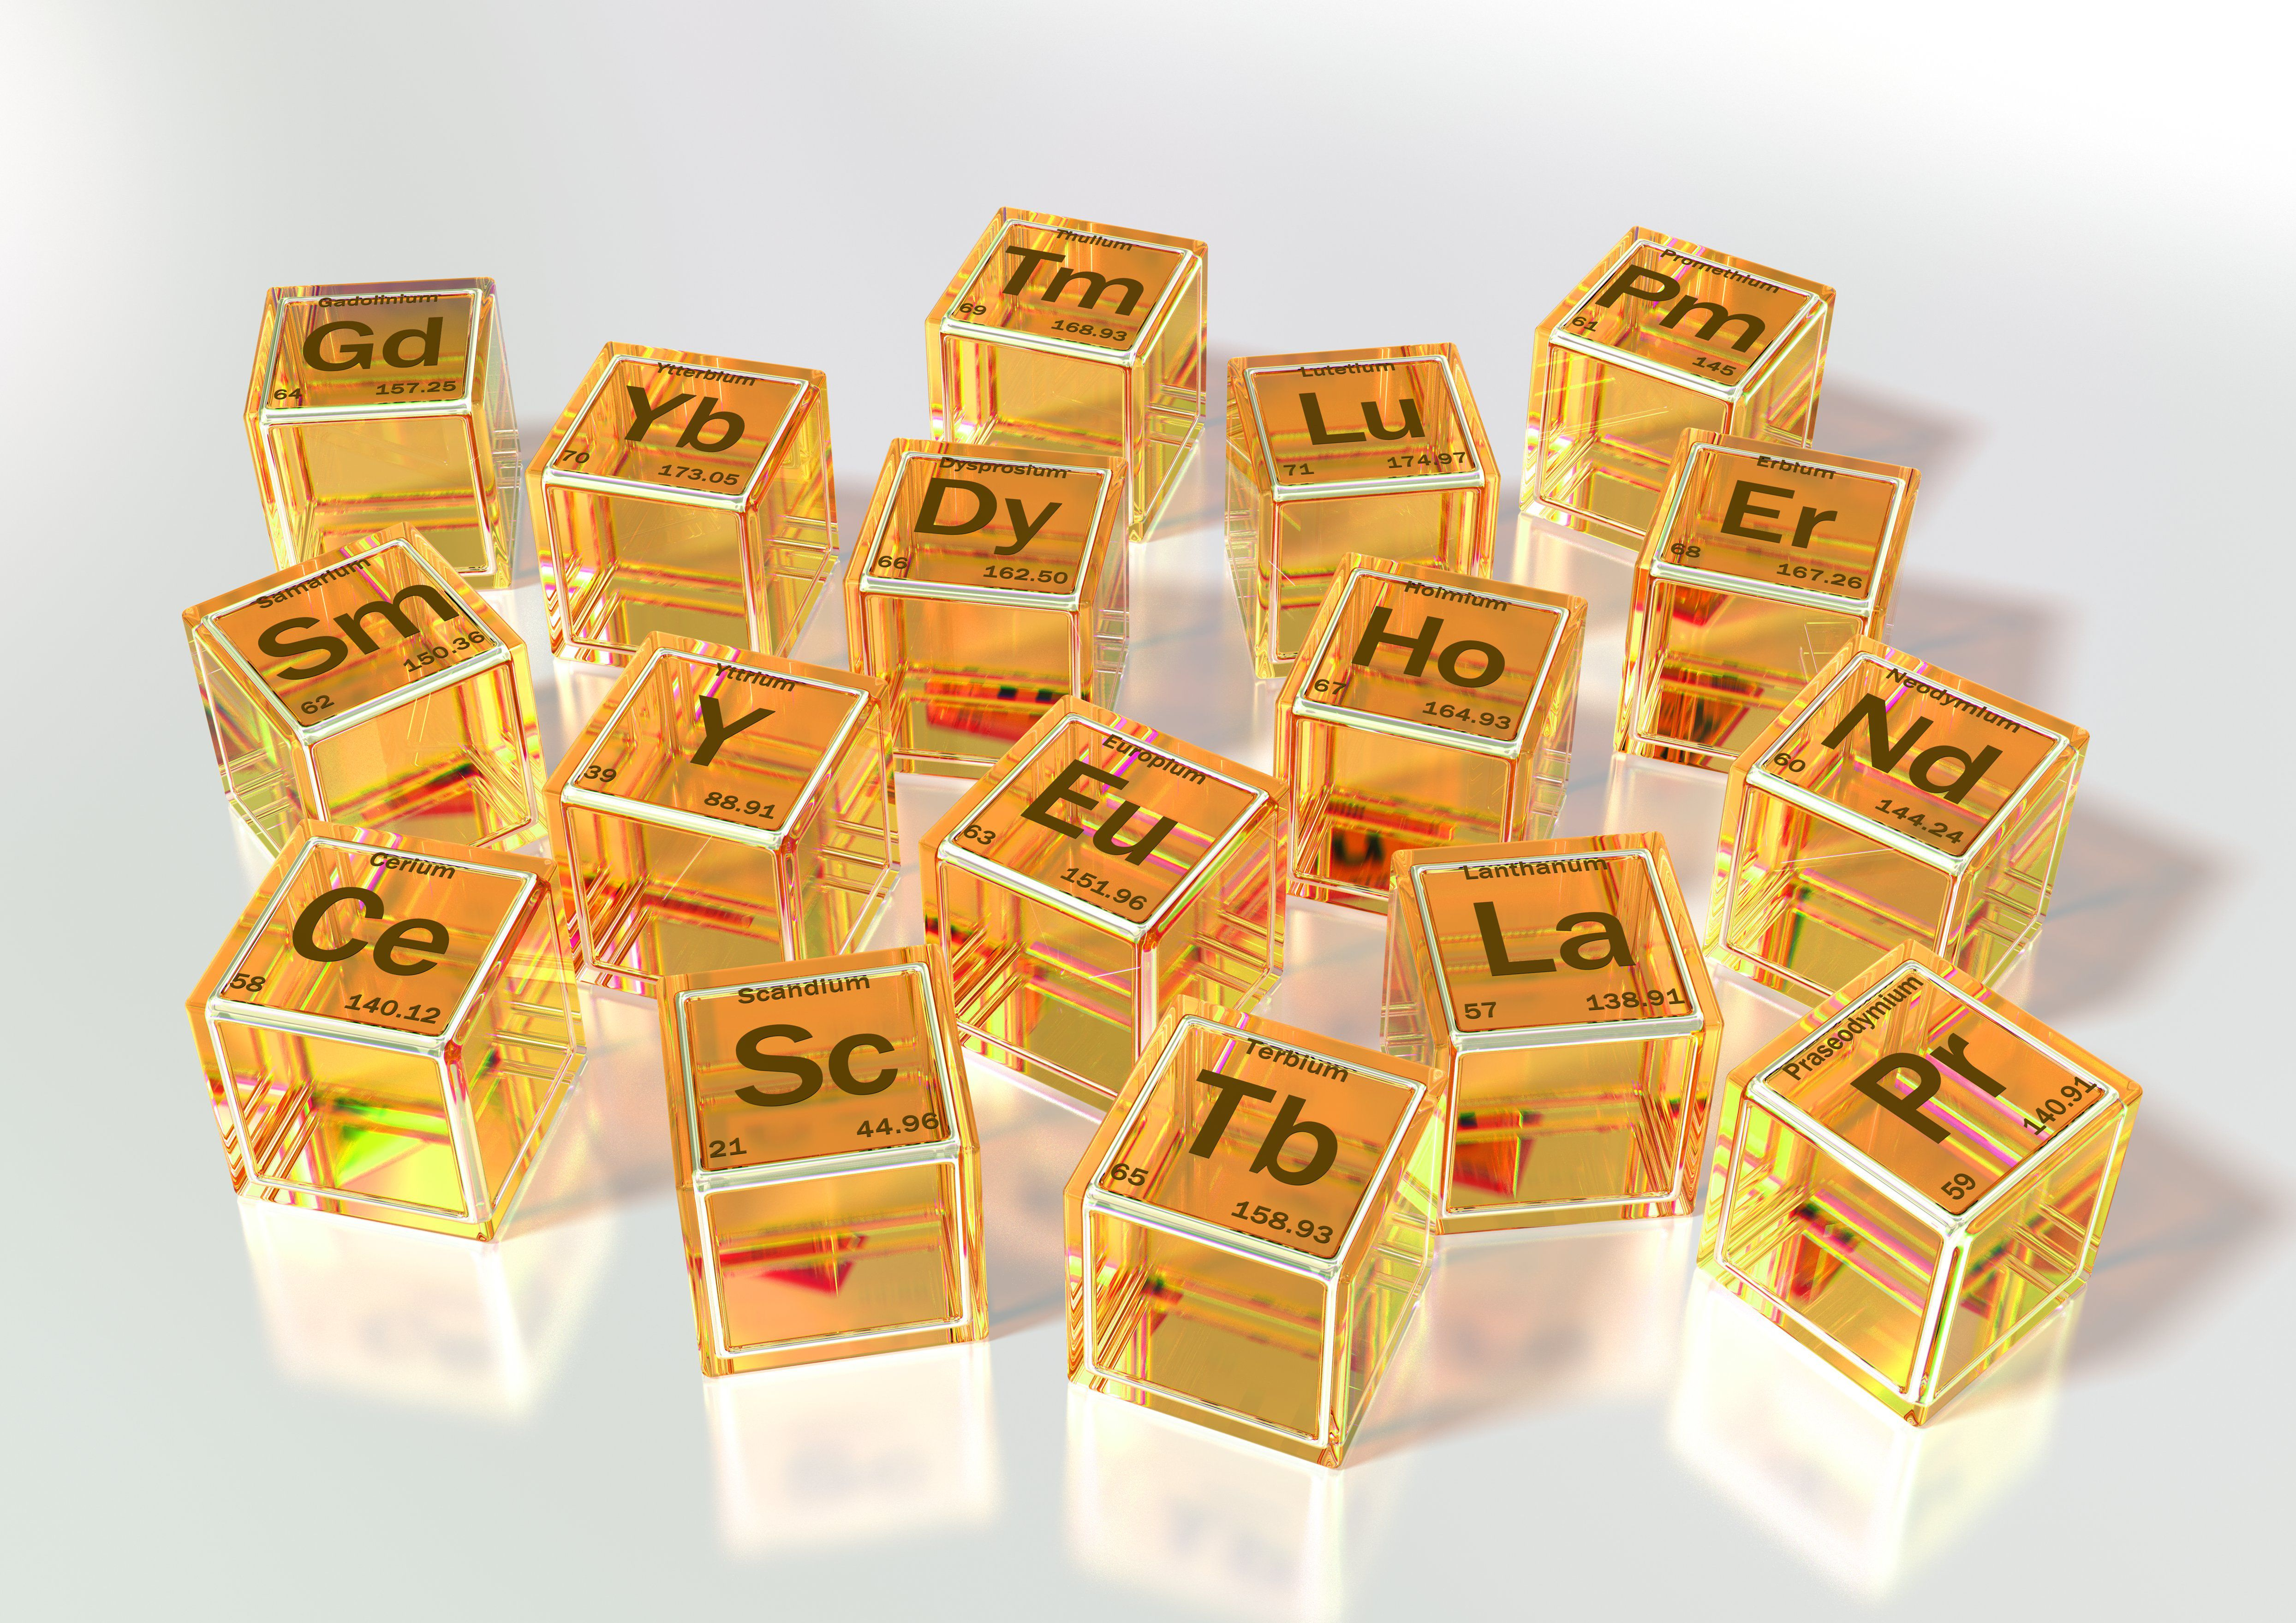 Yttrium is one of the rare earth elements.